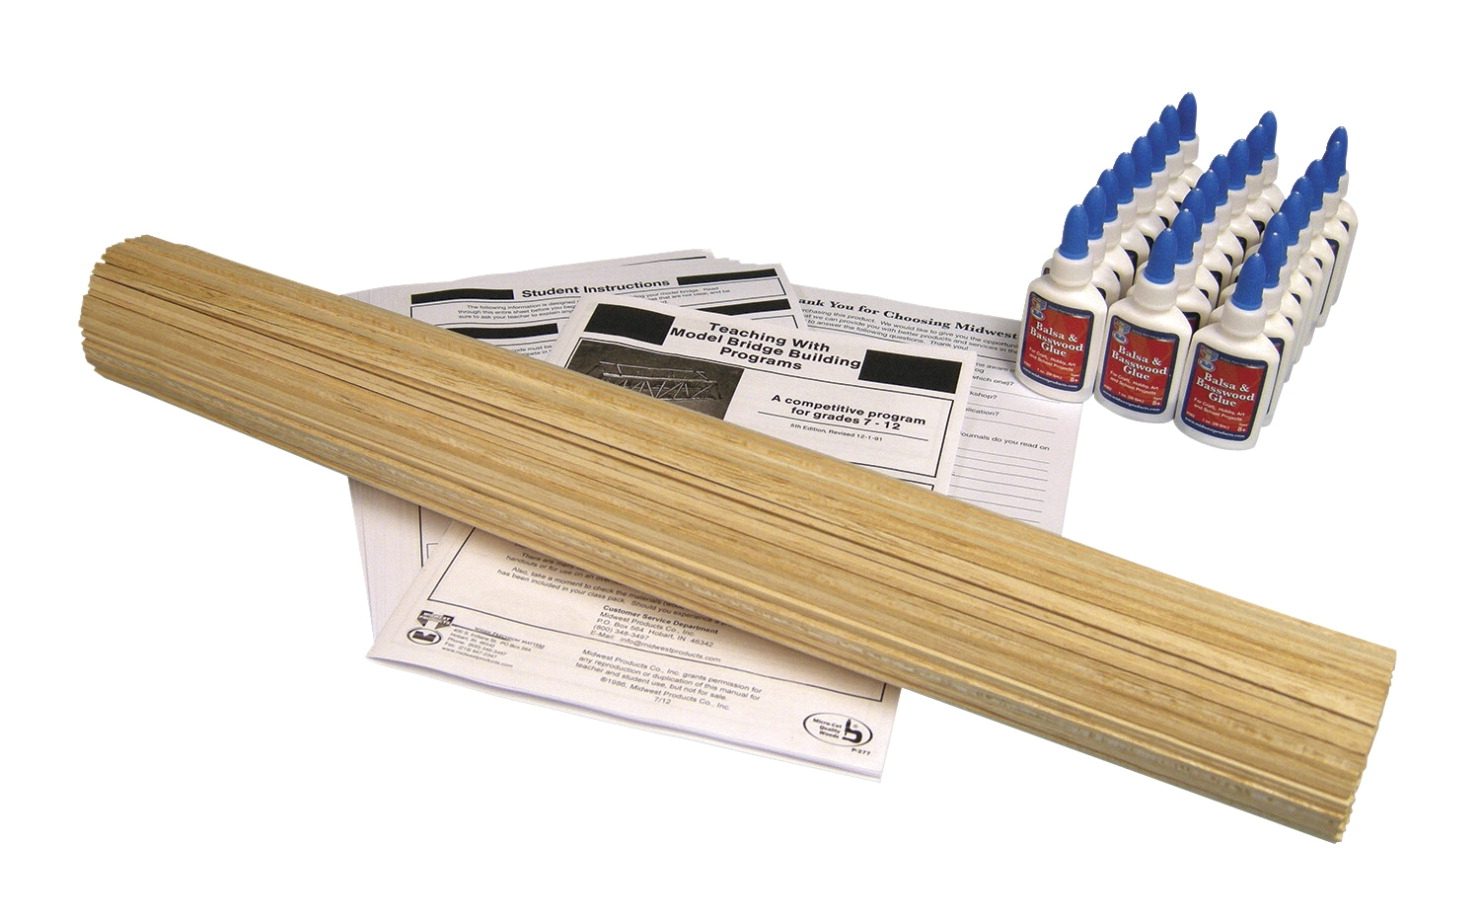 Frey Scientific Balsawood Or Basswood Bridge Building Kit - 571181 - Instructional Materials Resources Science Activities Equipment Physical Science Projects Books 571181